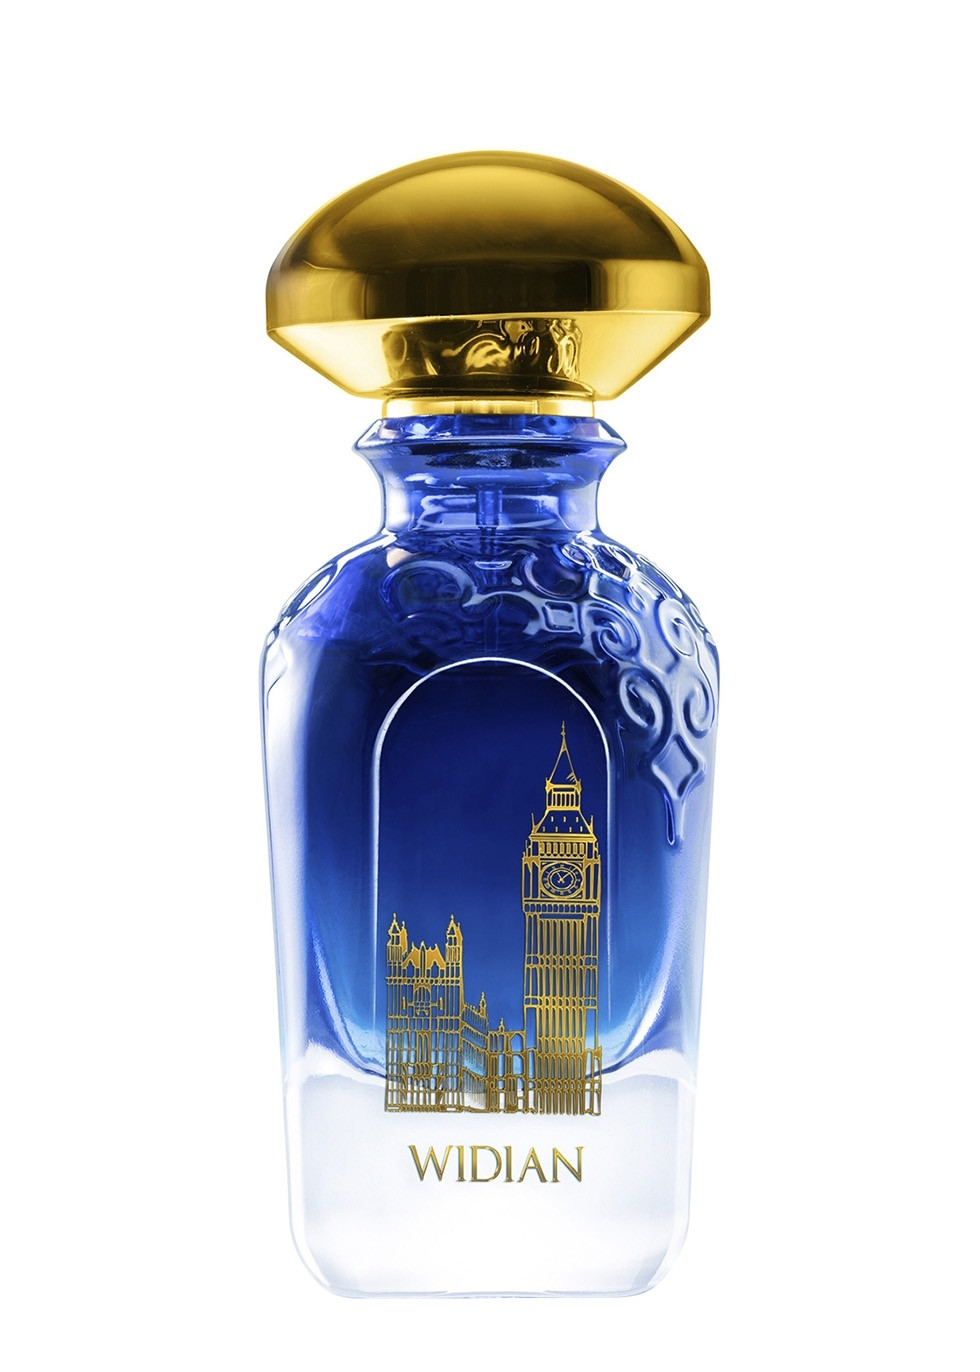 ralph lauren blue and white vase of widian liwa eau de parfum 50ml harvey nichols regarding 676973 1